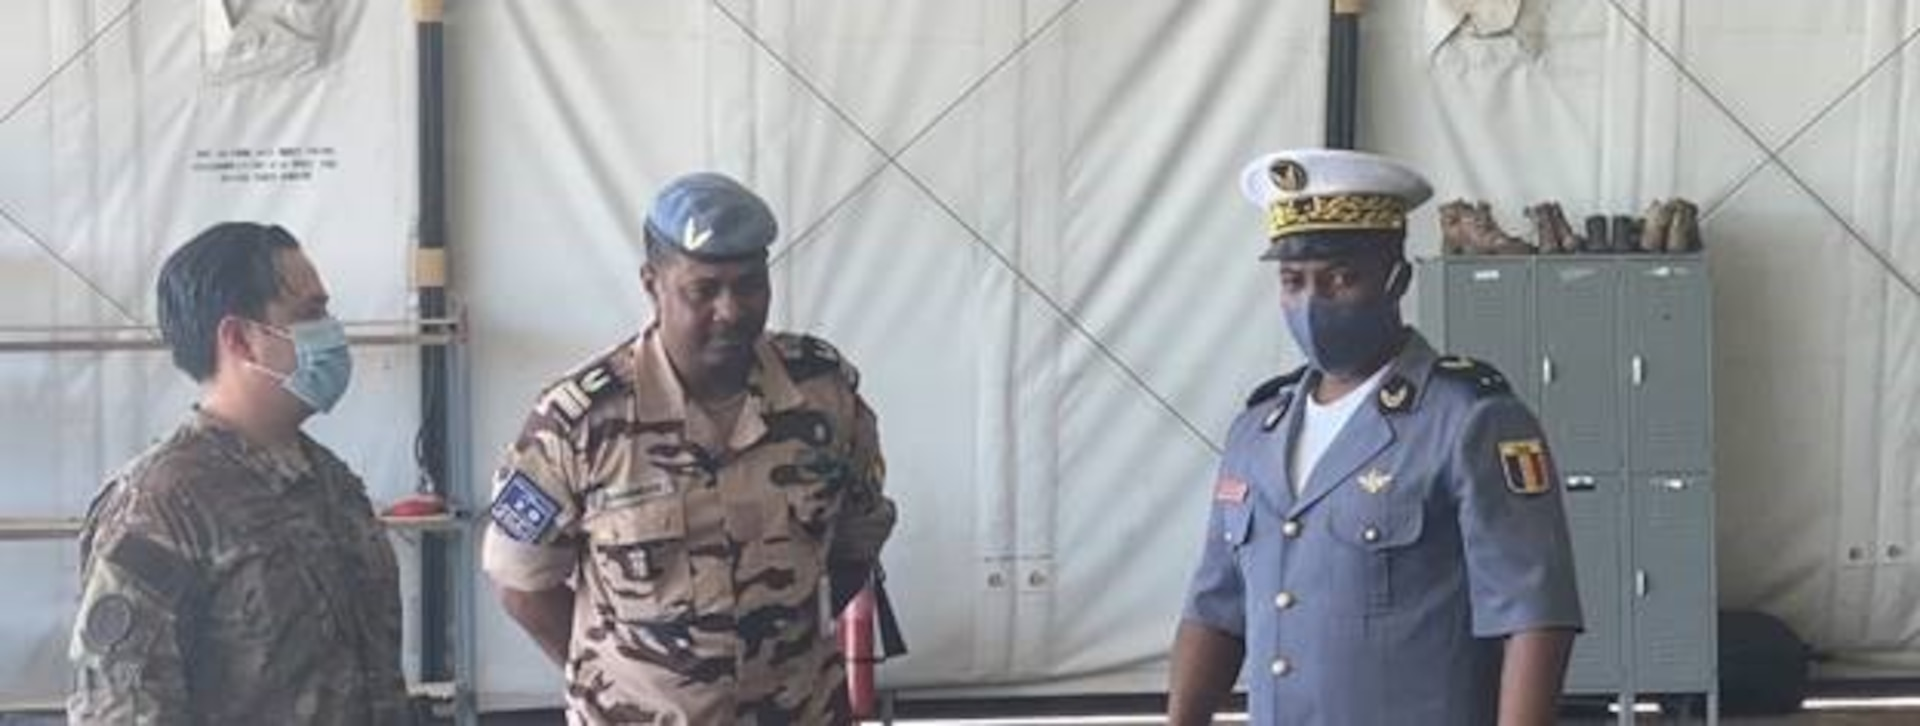 Brig. Gen. Idriss Amine Ahmed, Chadian Air Force chief of staff, right, and Lt. Col. Emmanuel Djangbei, Chadian Joint Intelligence, Surveillance and Reconnaissance Center director, center, congratulate U.S. Air Force Maj. John Harris, 818th Mobility Support Advisory Squadron assistant director of operations, left, on his final flight as a U.S. Air Force pilot March 8, 2021, at Adji Kossei Air Base, N'Djamena, Chad. Harris and air advisors from the 818th MSAS conducted training to accelerate Chadian Air Force peacekeeping and security operations in the region. (U.S. Army photo by Sgt. 1st Class Joshua Prestel)